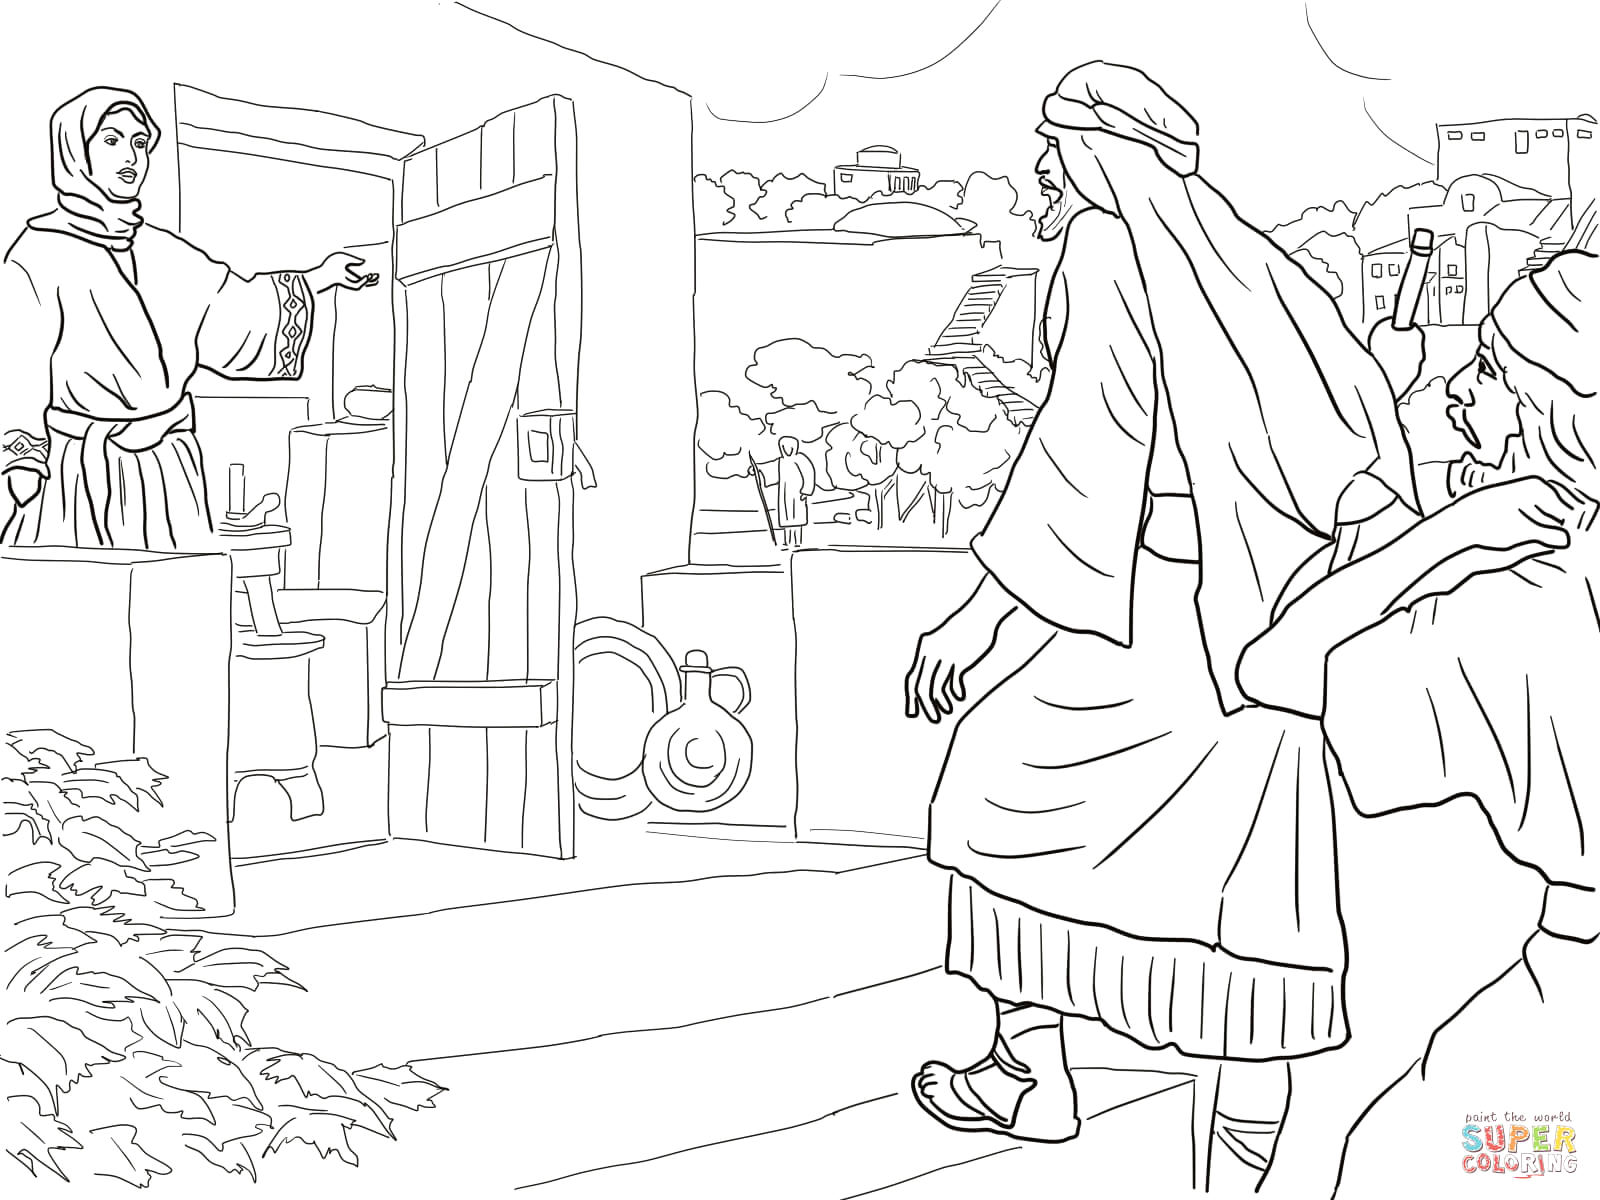 New Room Built for Elisha Coloring Page New Room Built for Elisha Coloring Page